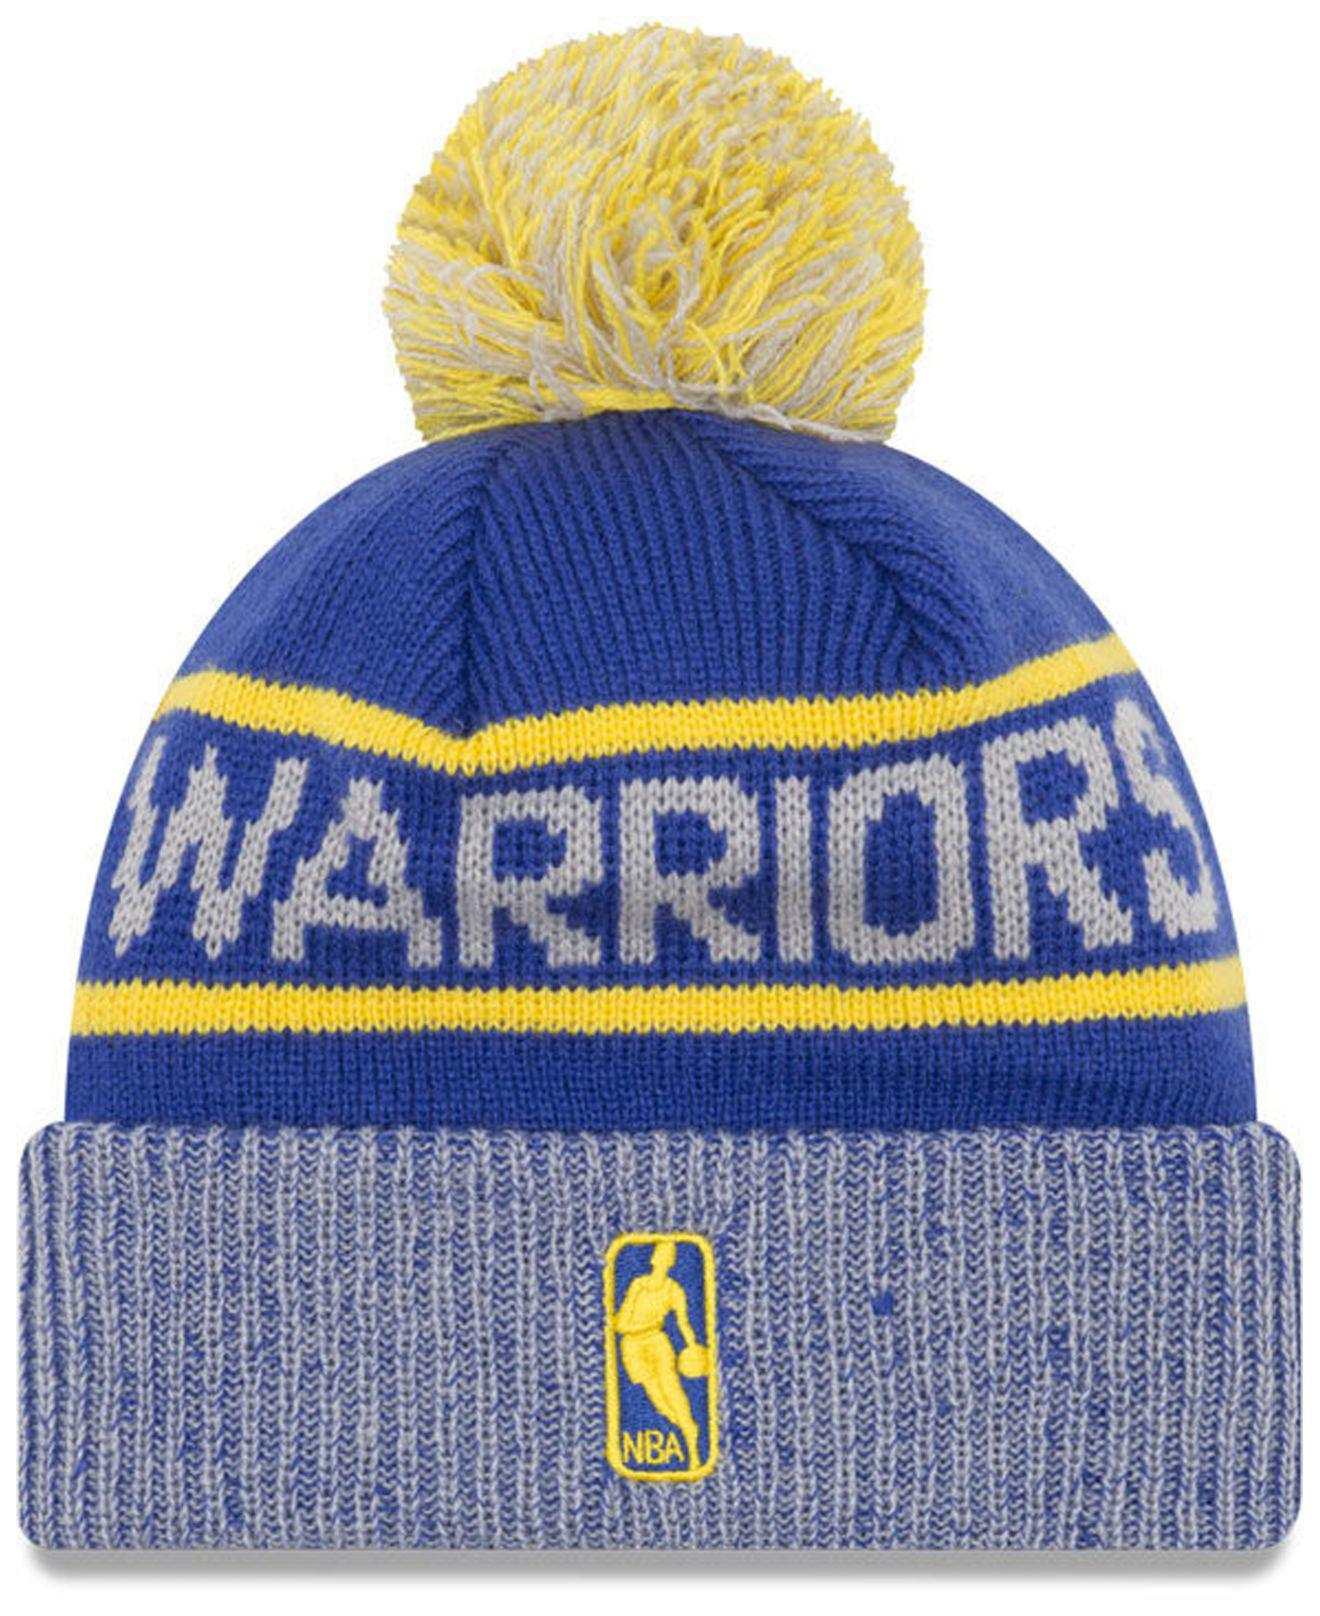 7862abdf91f ... discount code for lyst ktz golden state warriors court force pom knit  hat in blue for